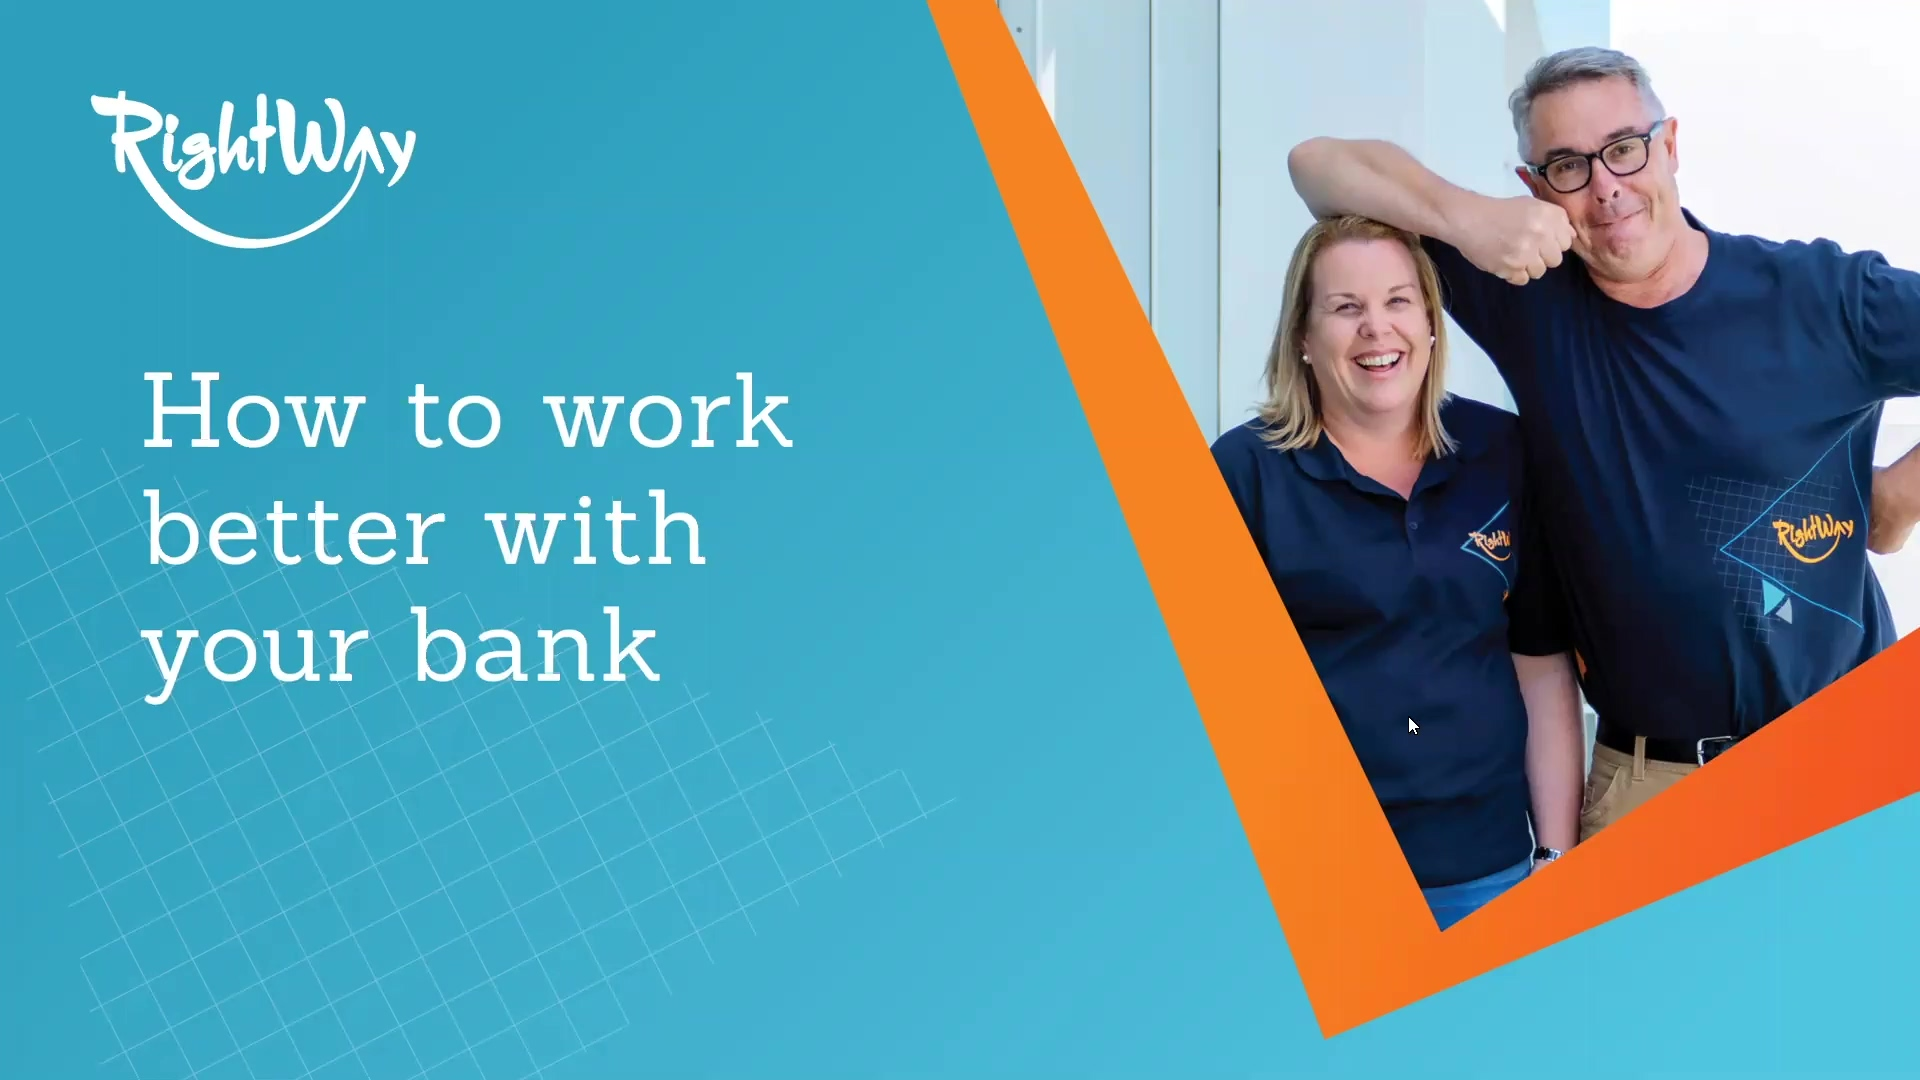 How to work better with your bank